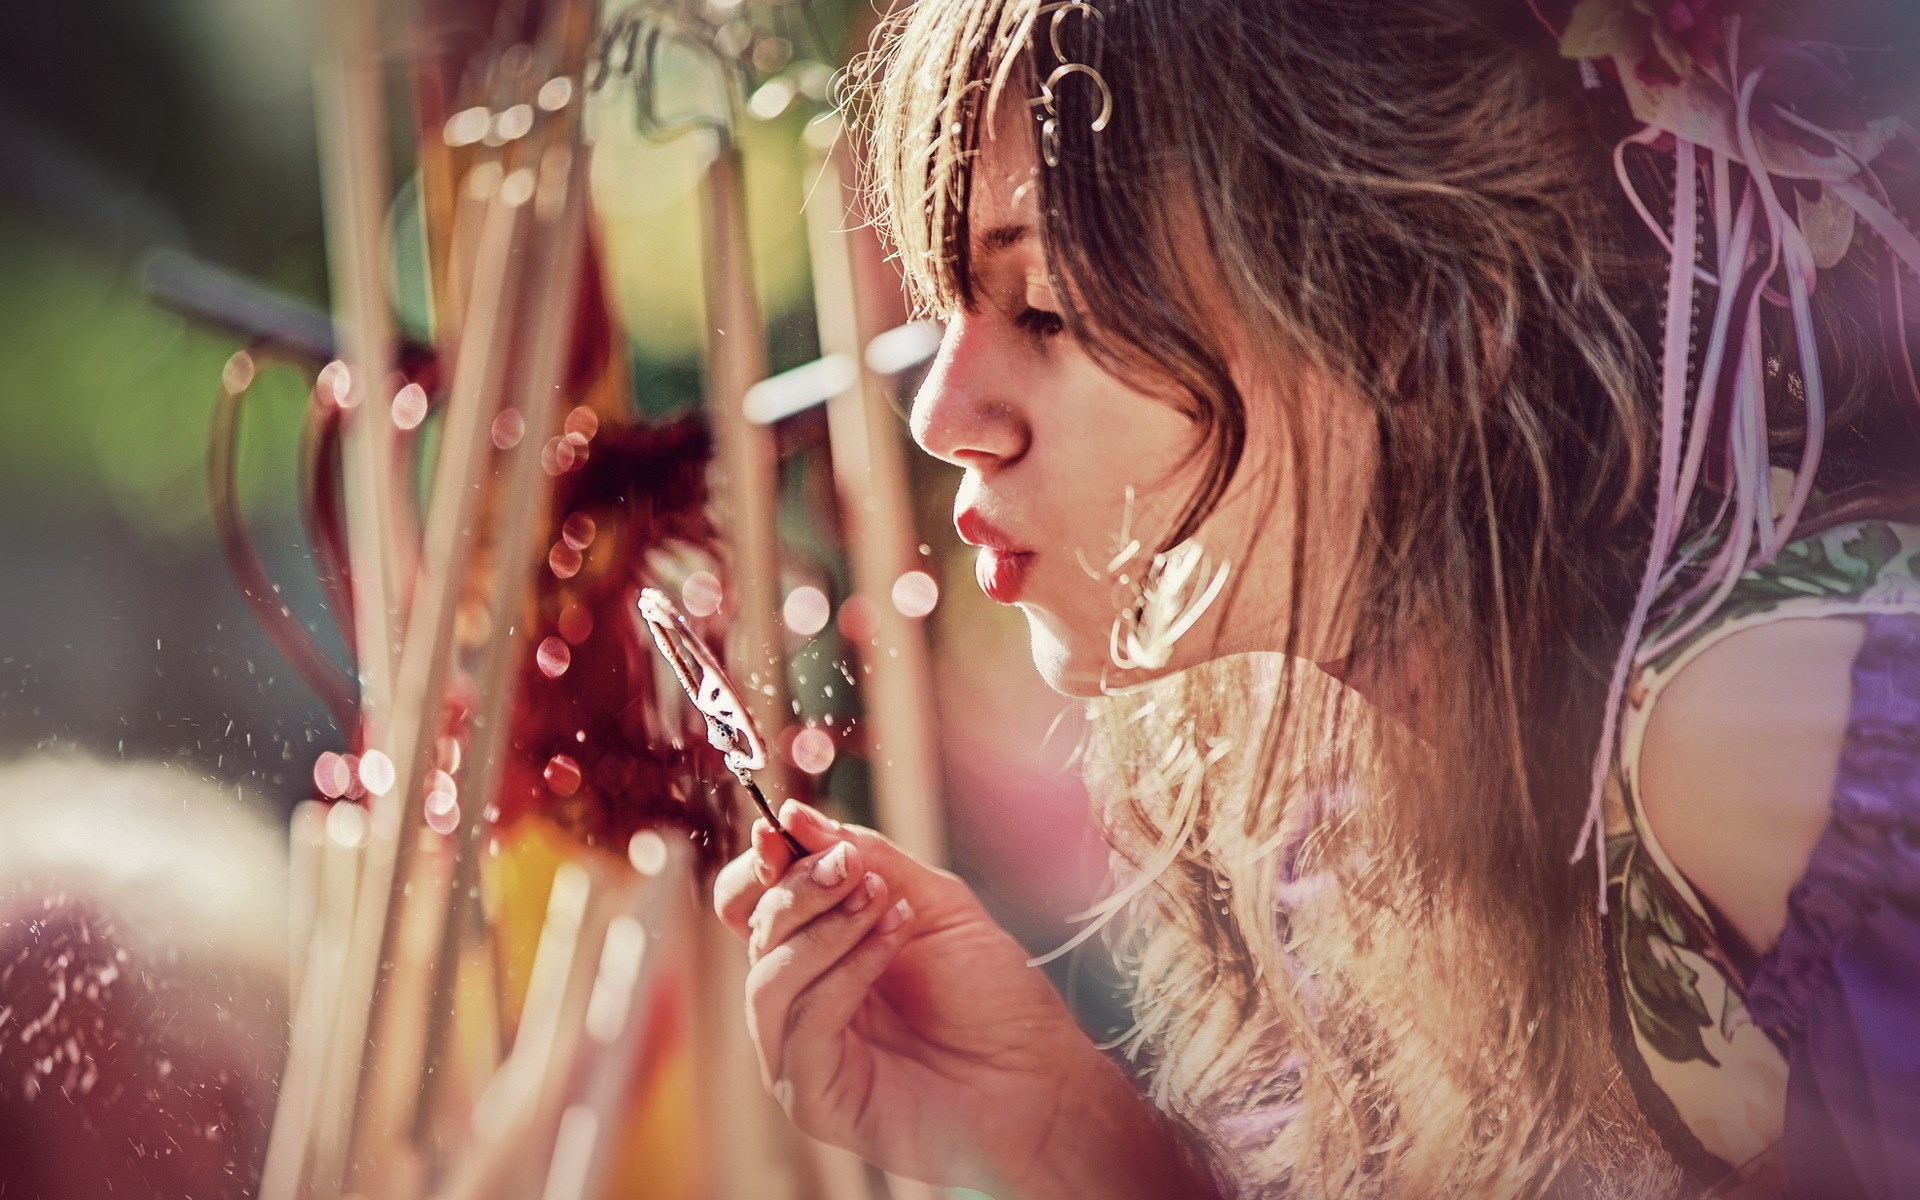 girl-bubbles-photo-vintage-lovely-warm-picture-hd-wallpaper